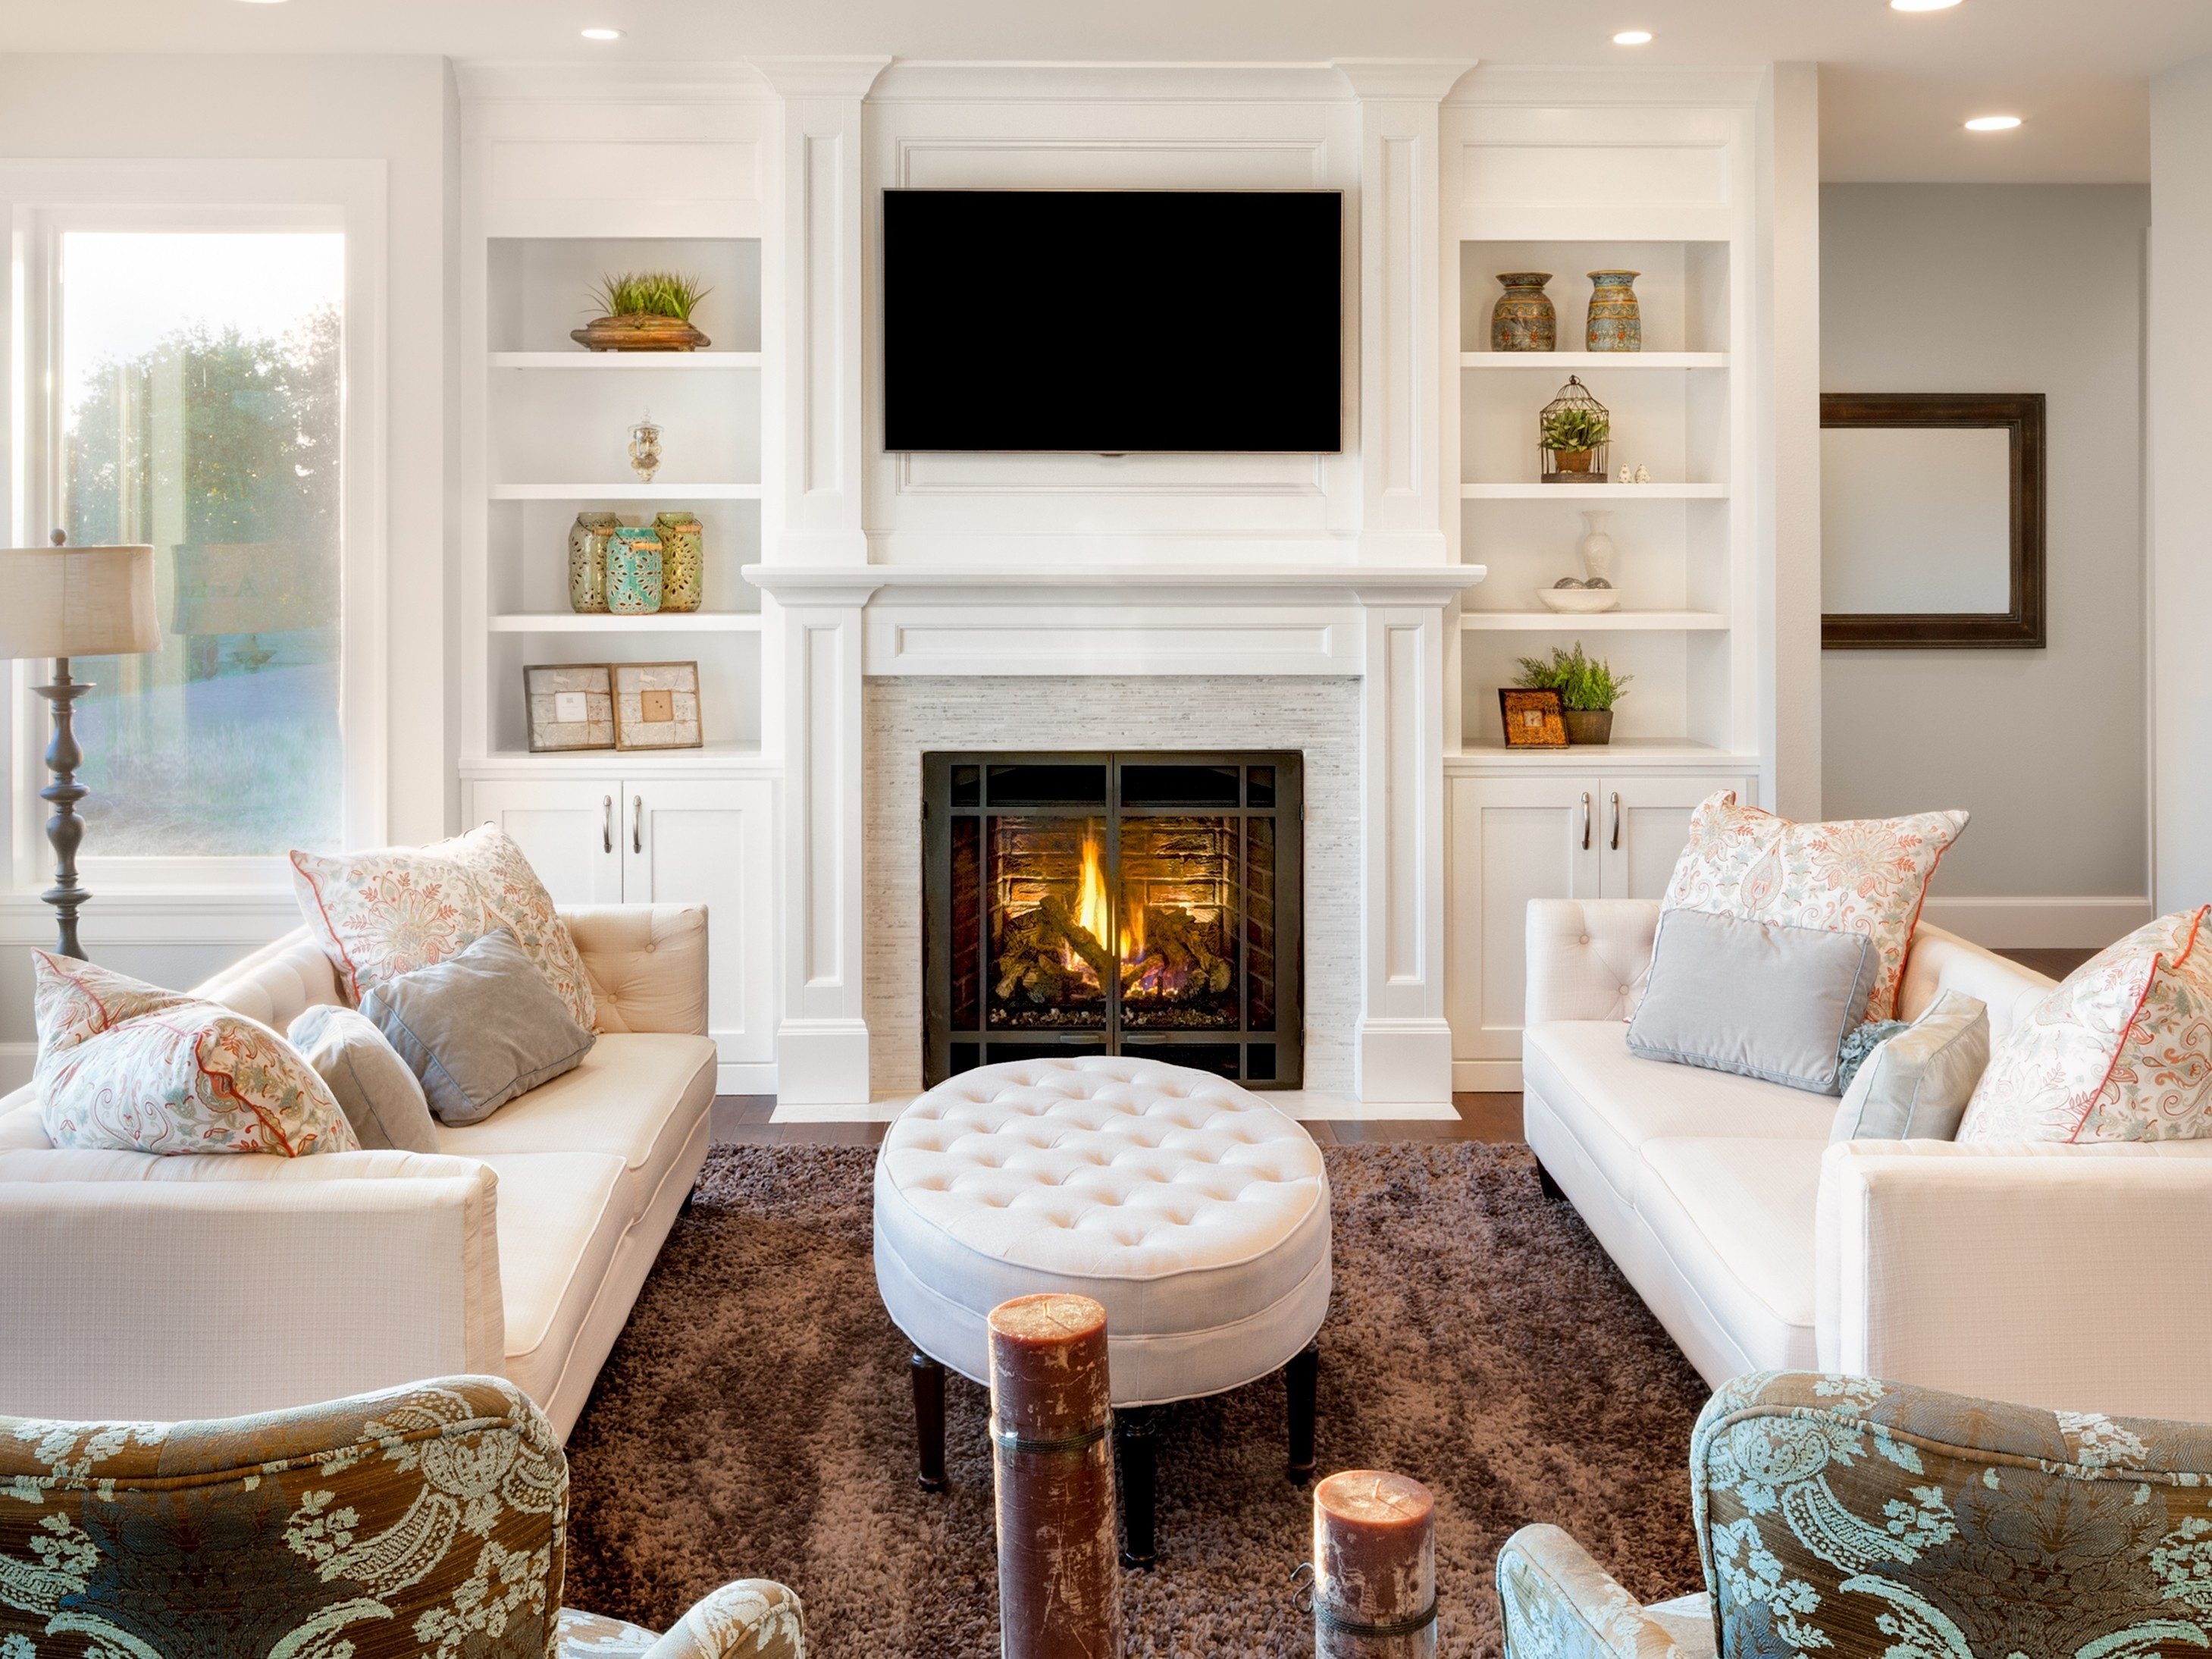 How To Operate A Fireplace 10 Tips For Selecting The Ideal Fireplace